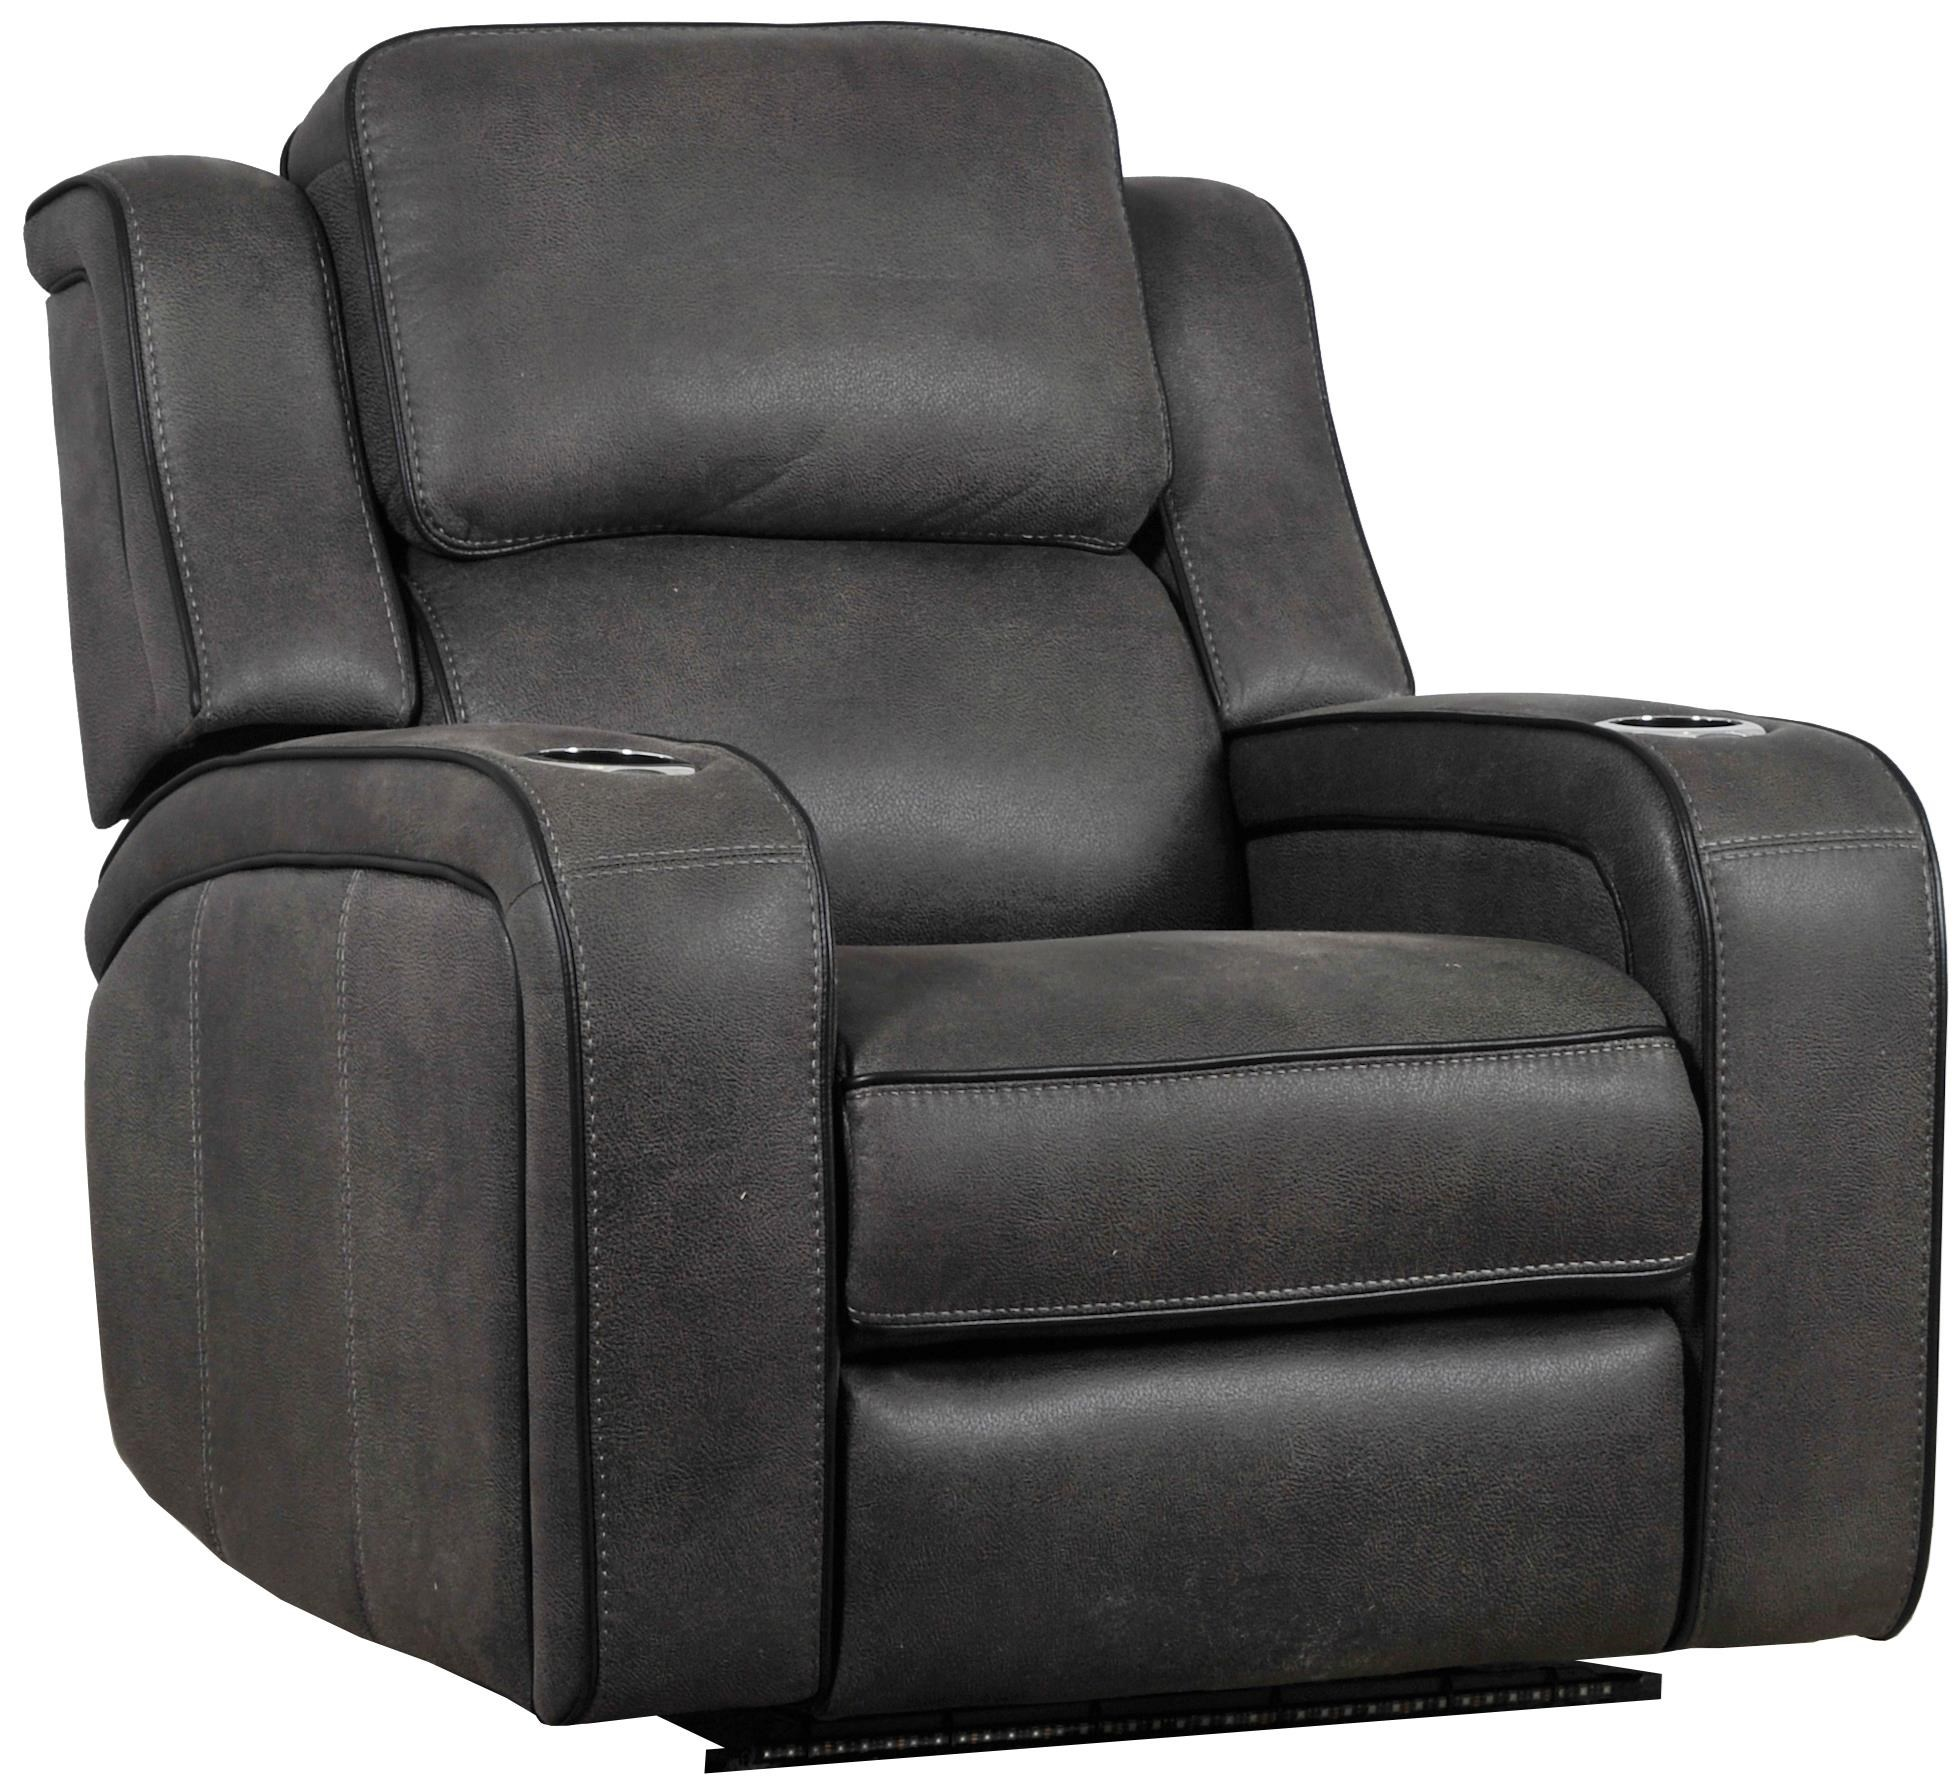 28659 Power Headrest Recliner with LED Lighting by Builtwell at Sadler's Home Furnishings